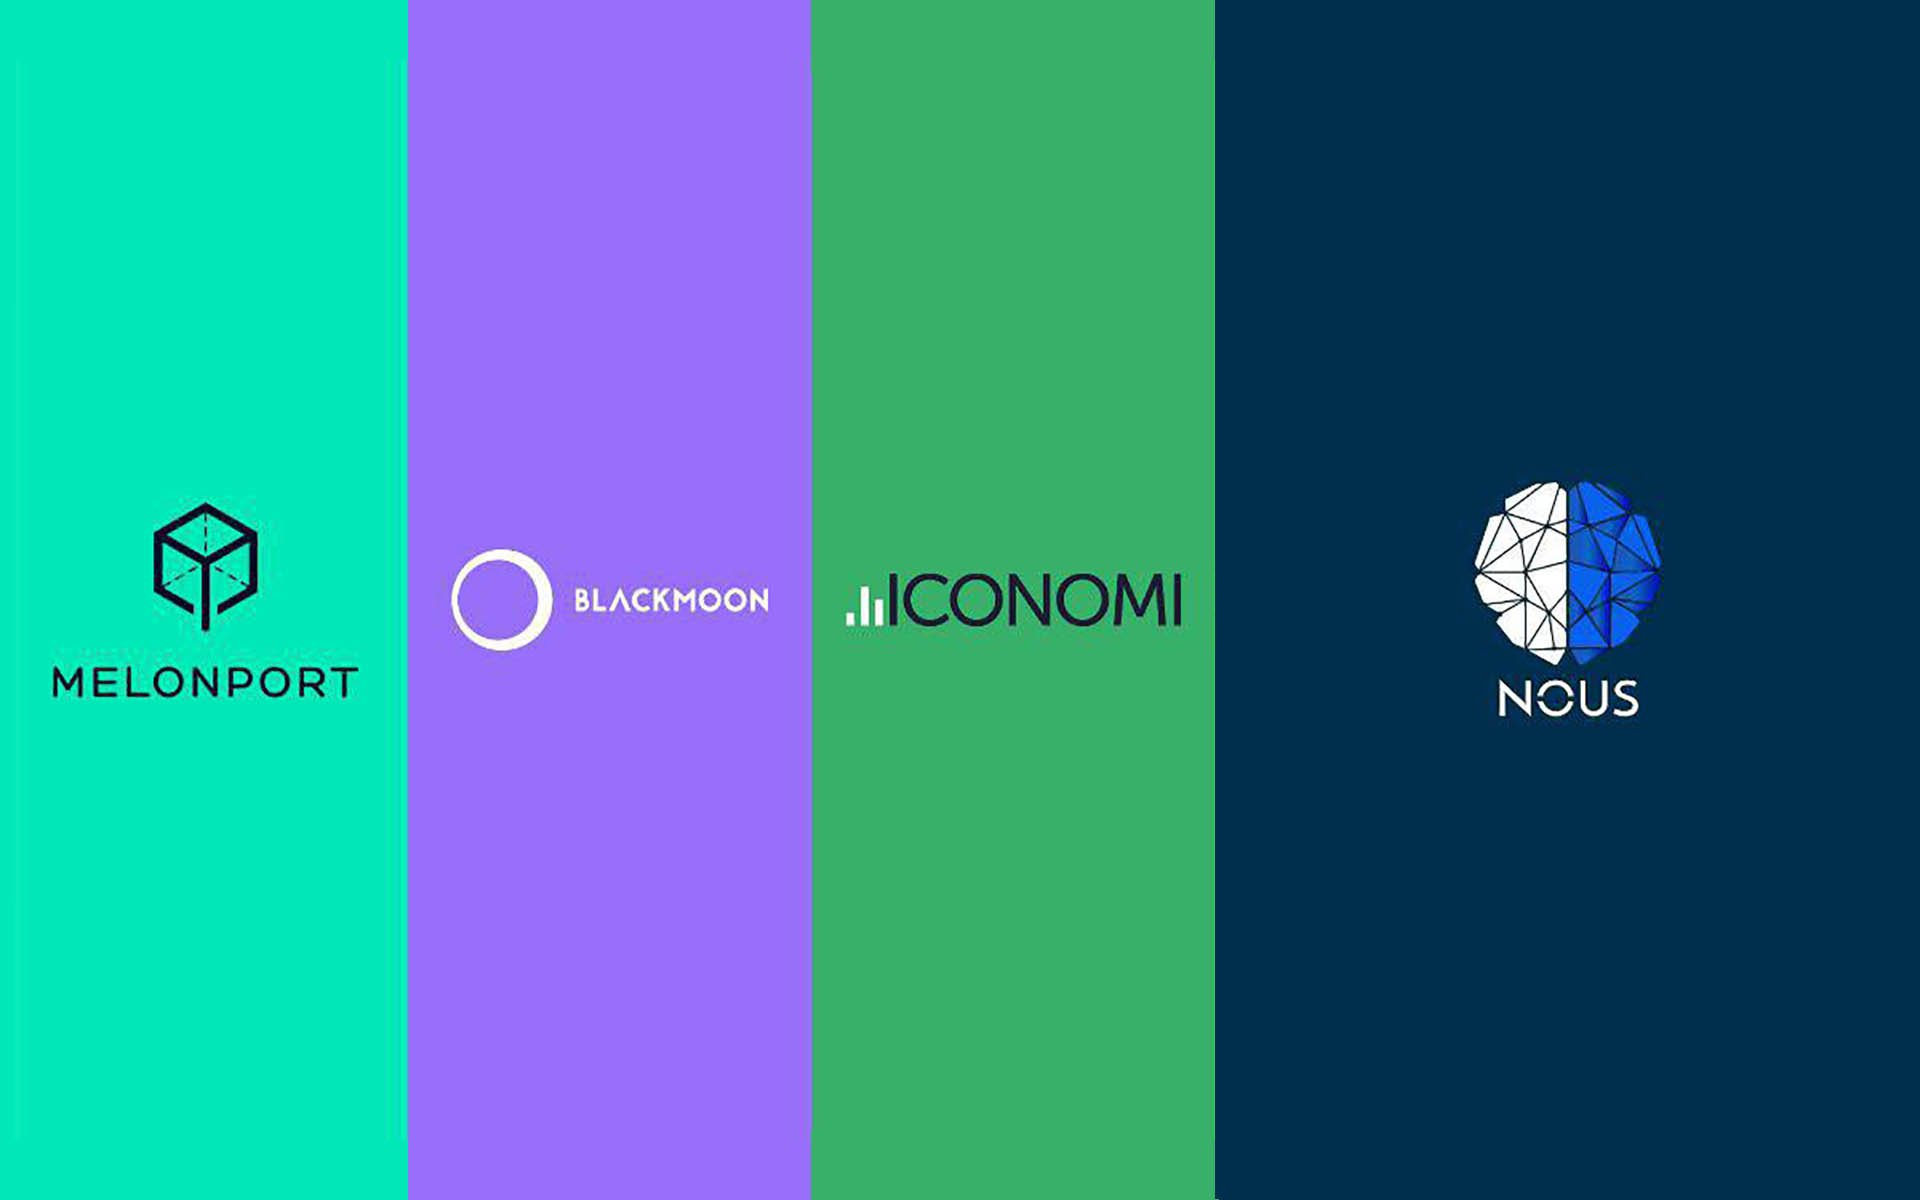 Blackmoon, Nousplatform, ICONOMI and Melonport: Revolutionaries of Traditional Investment